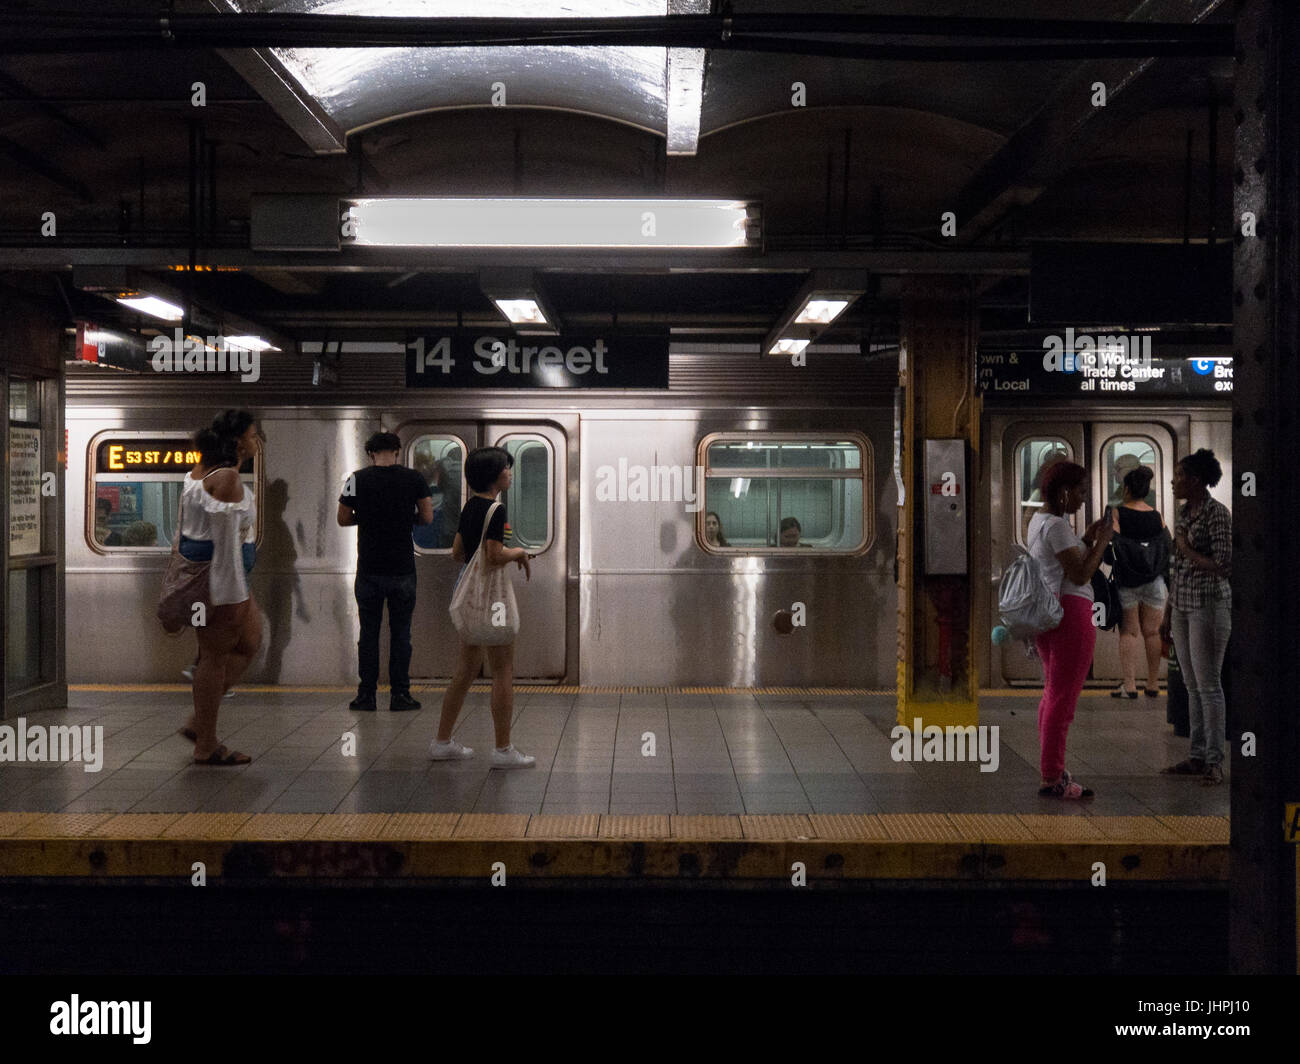 New York, NY -- July 12, 2017 -- People waiting for the train at the New York City subway station at 8th Avenue - Stock Image